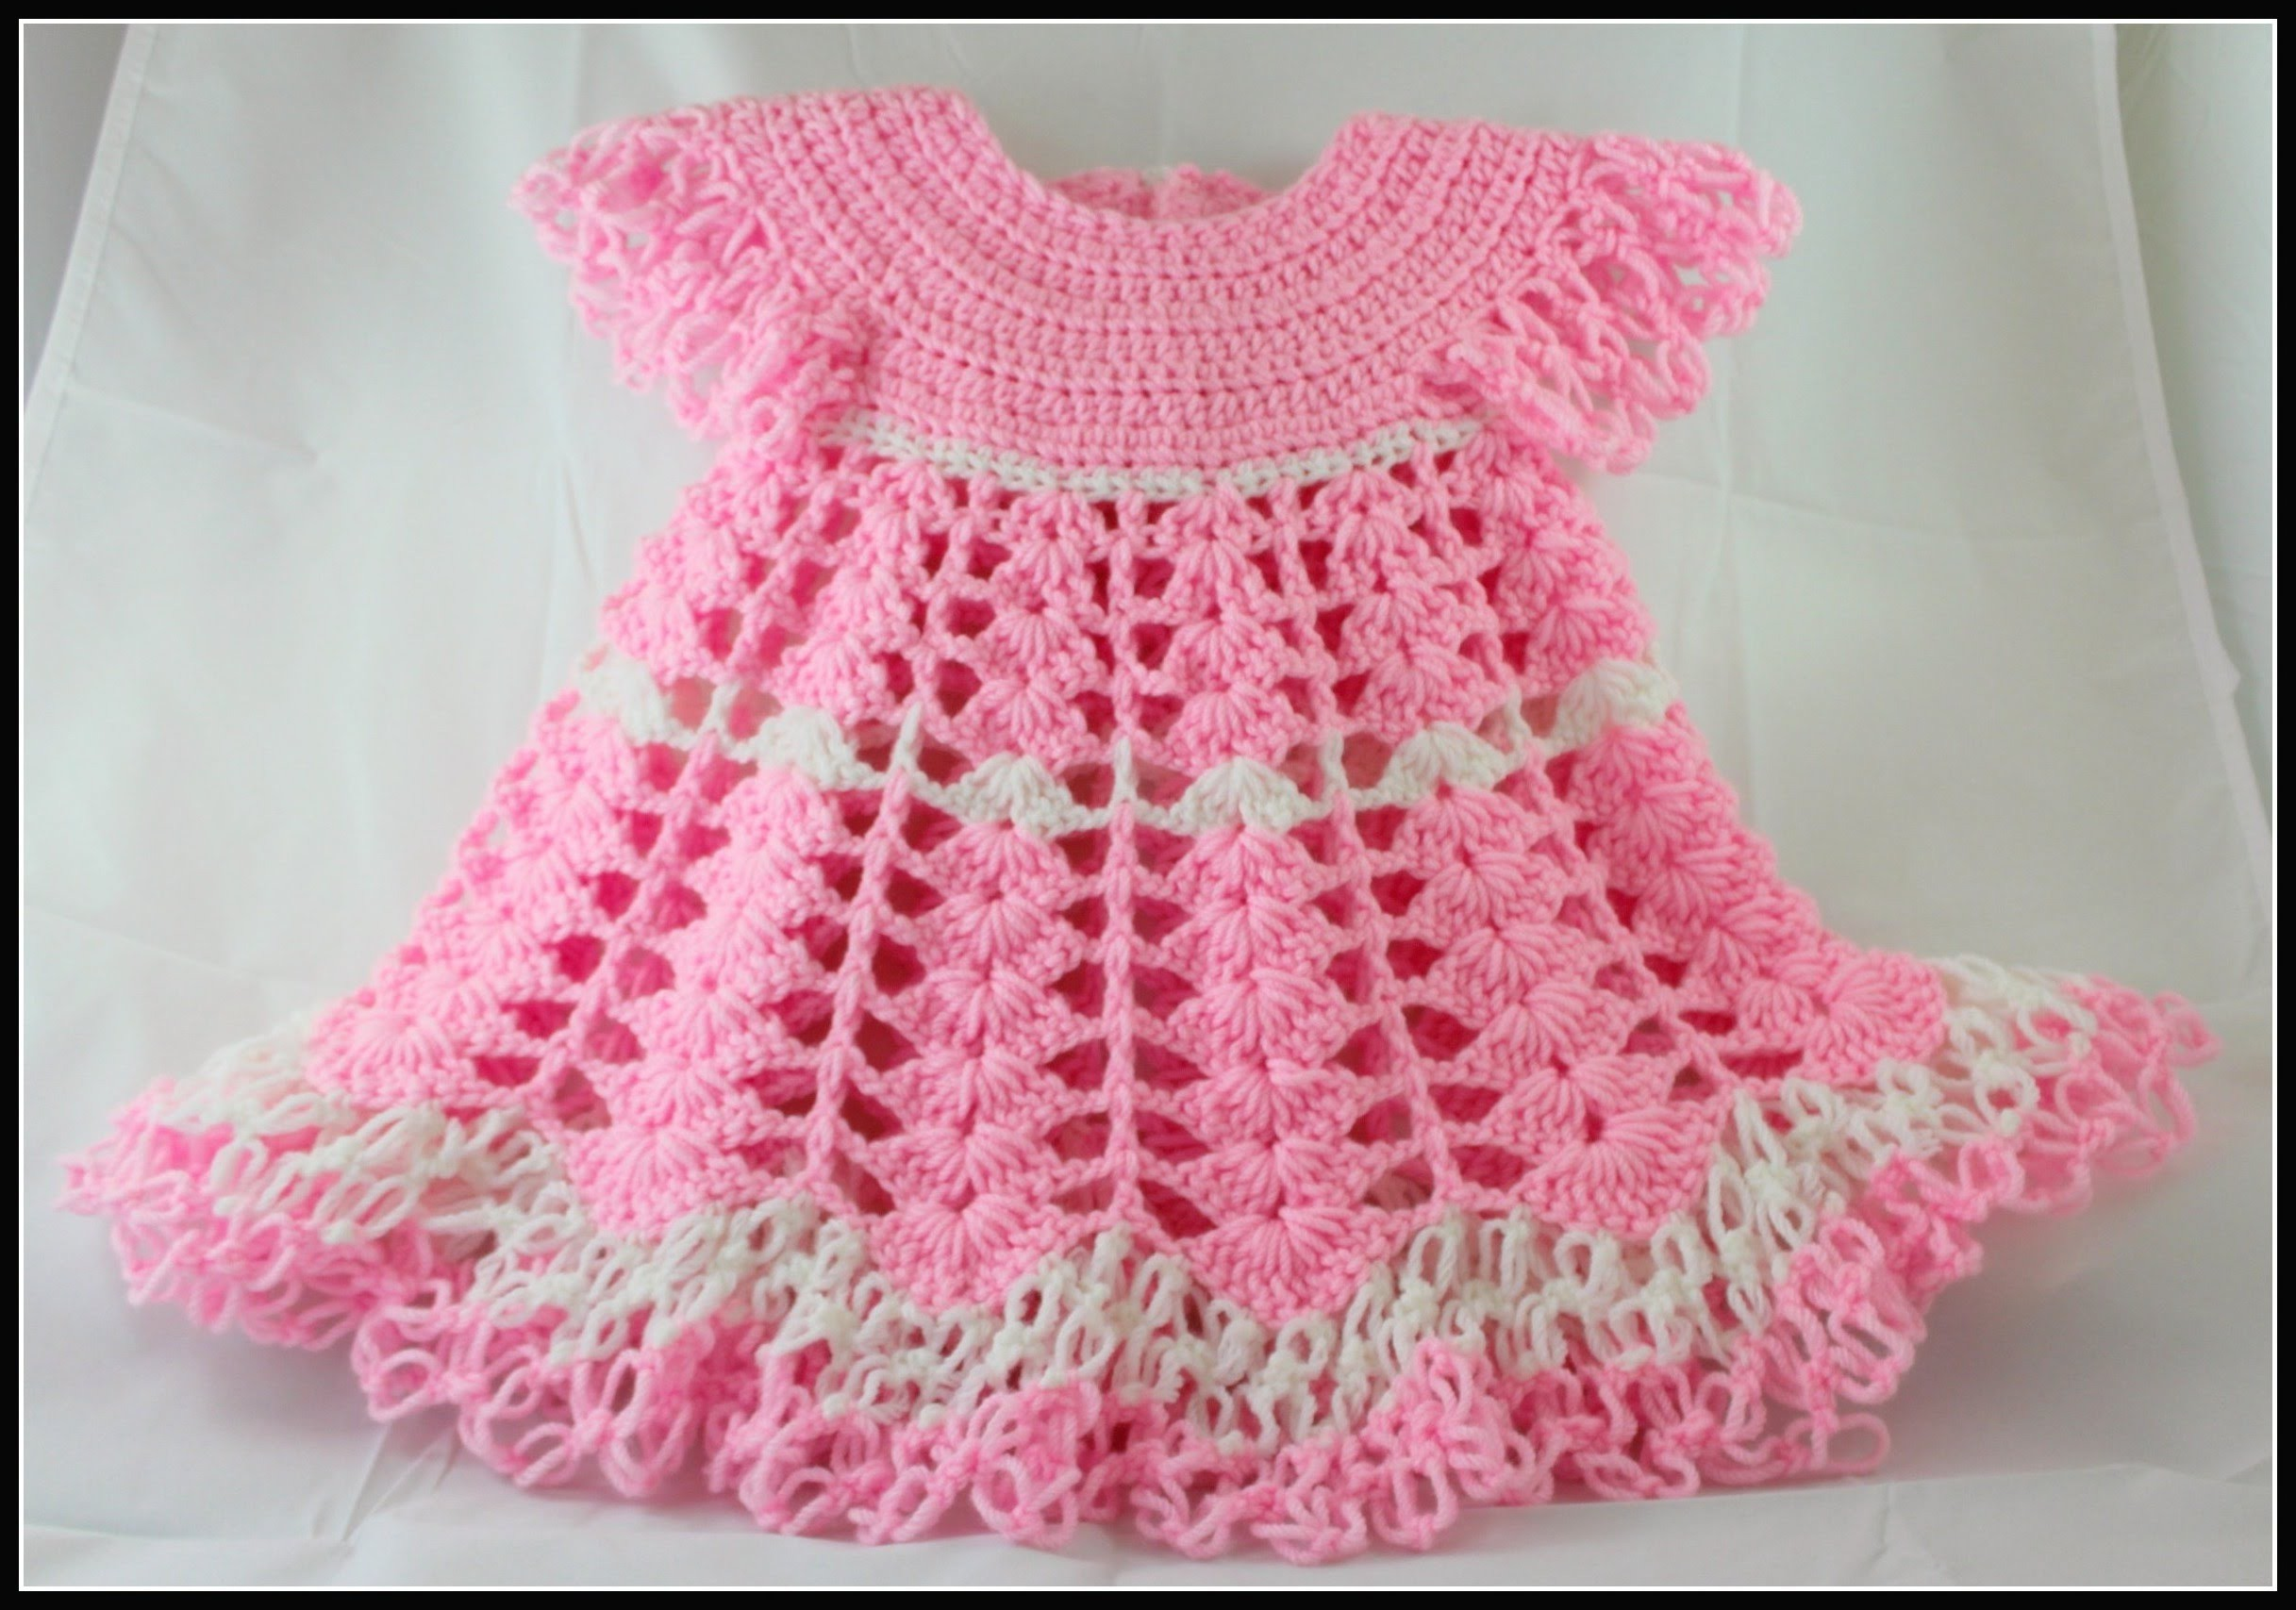 Crochet Baby Dress. Shells and lacy dress - Video 1. subtitulos en espanol